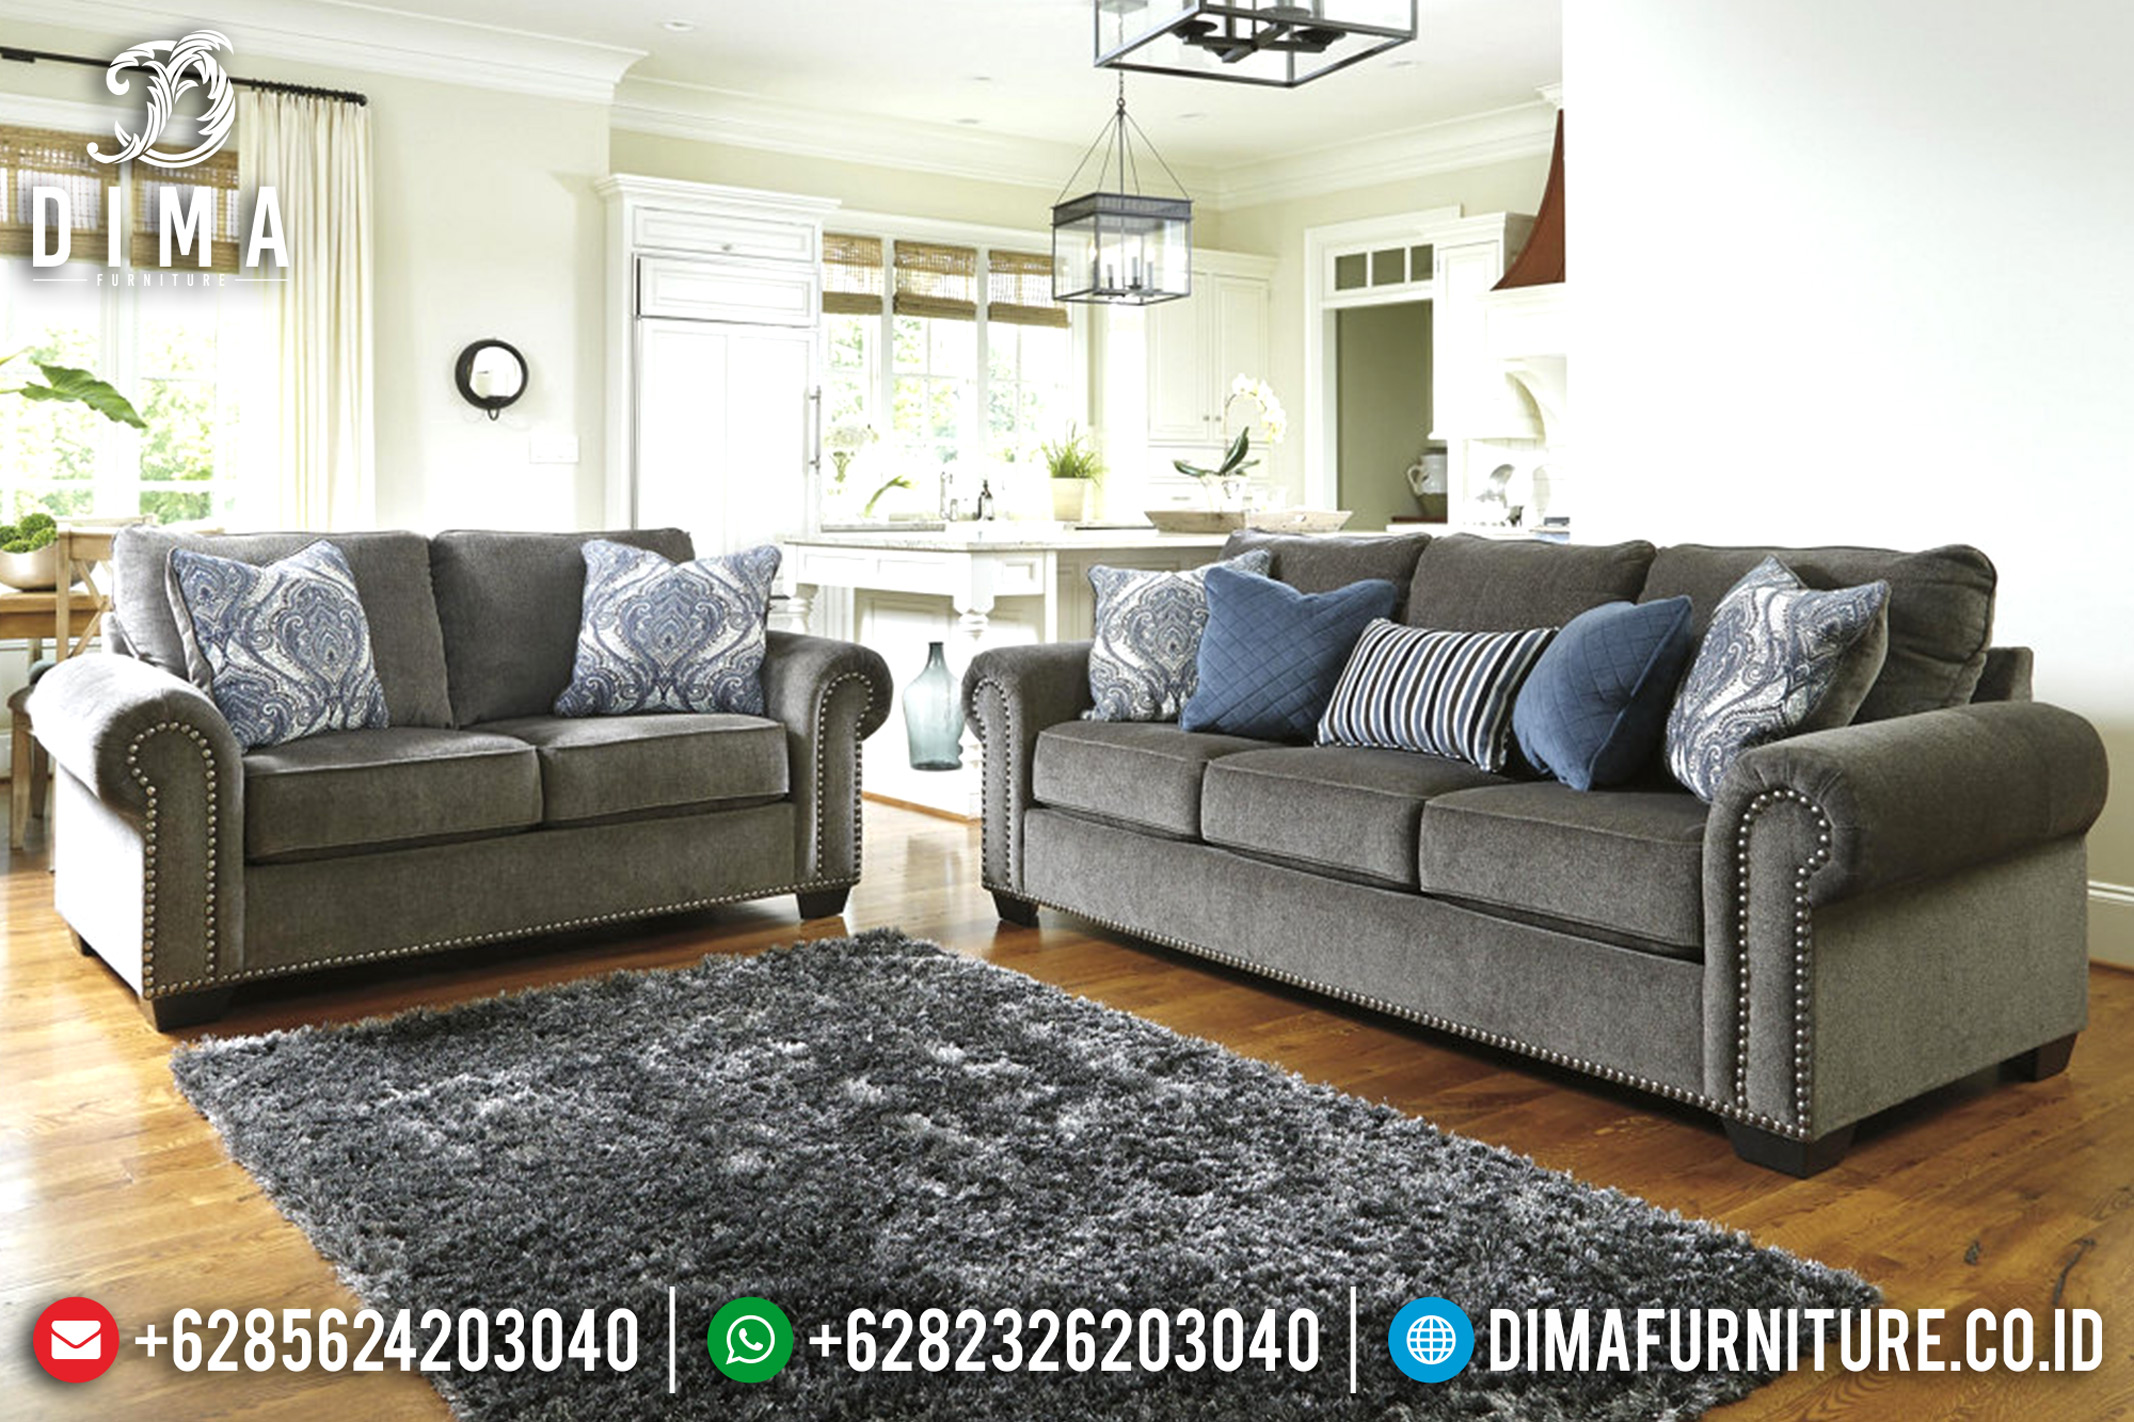 Sofa Tamu Jepara Minimalis Mewah Terbaru Grey Canvas Furniture Indonesia DF-0693